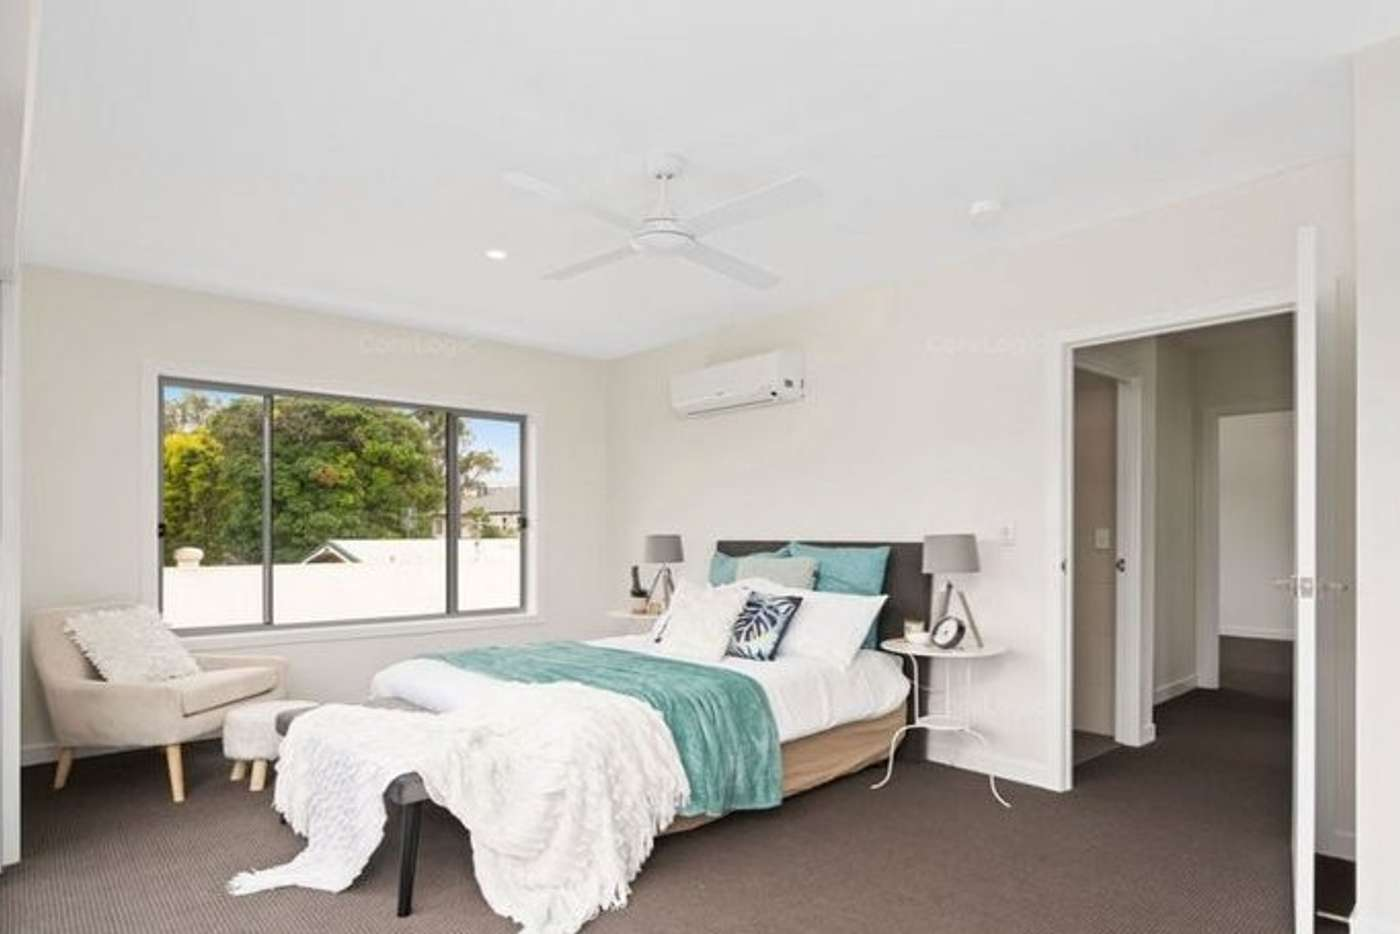 Sixth view of Homely house listing, 1/8 Nevenia Street, Labrador QLD 4215